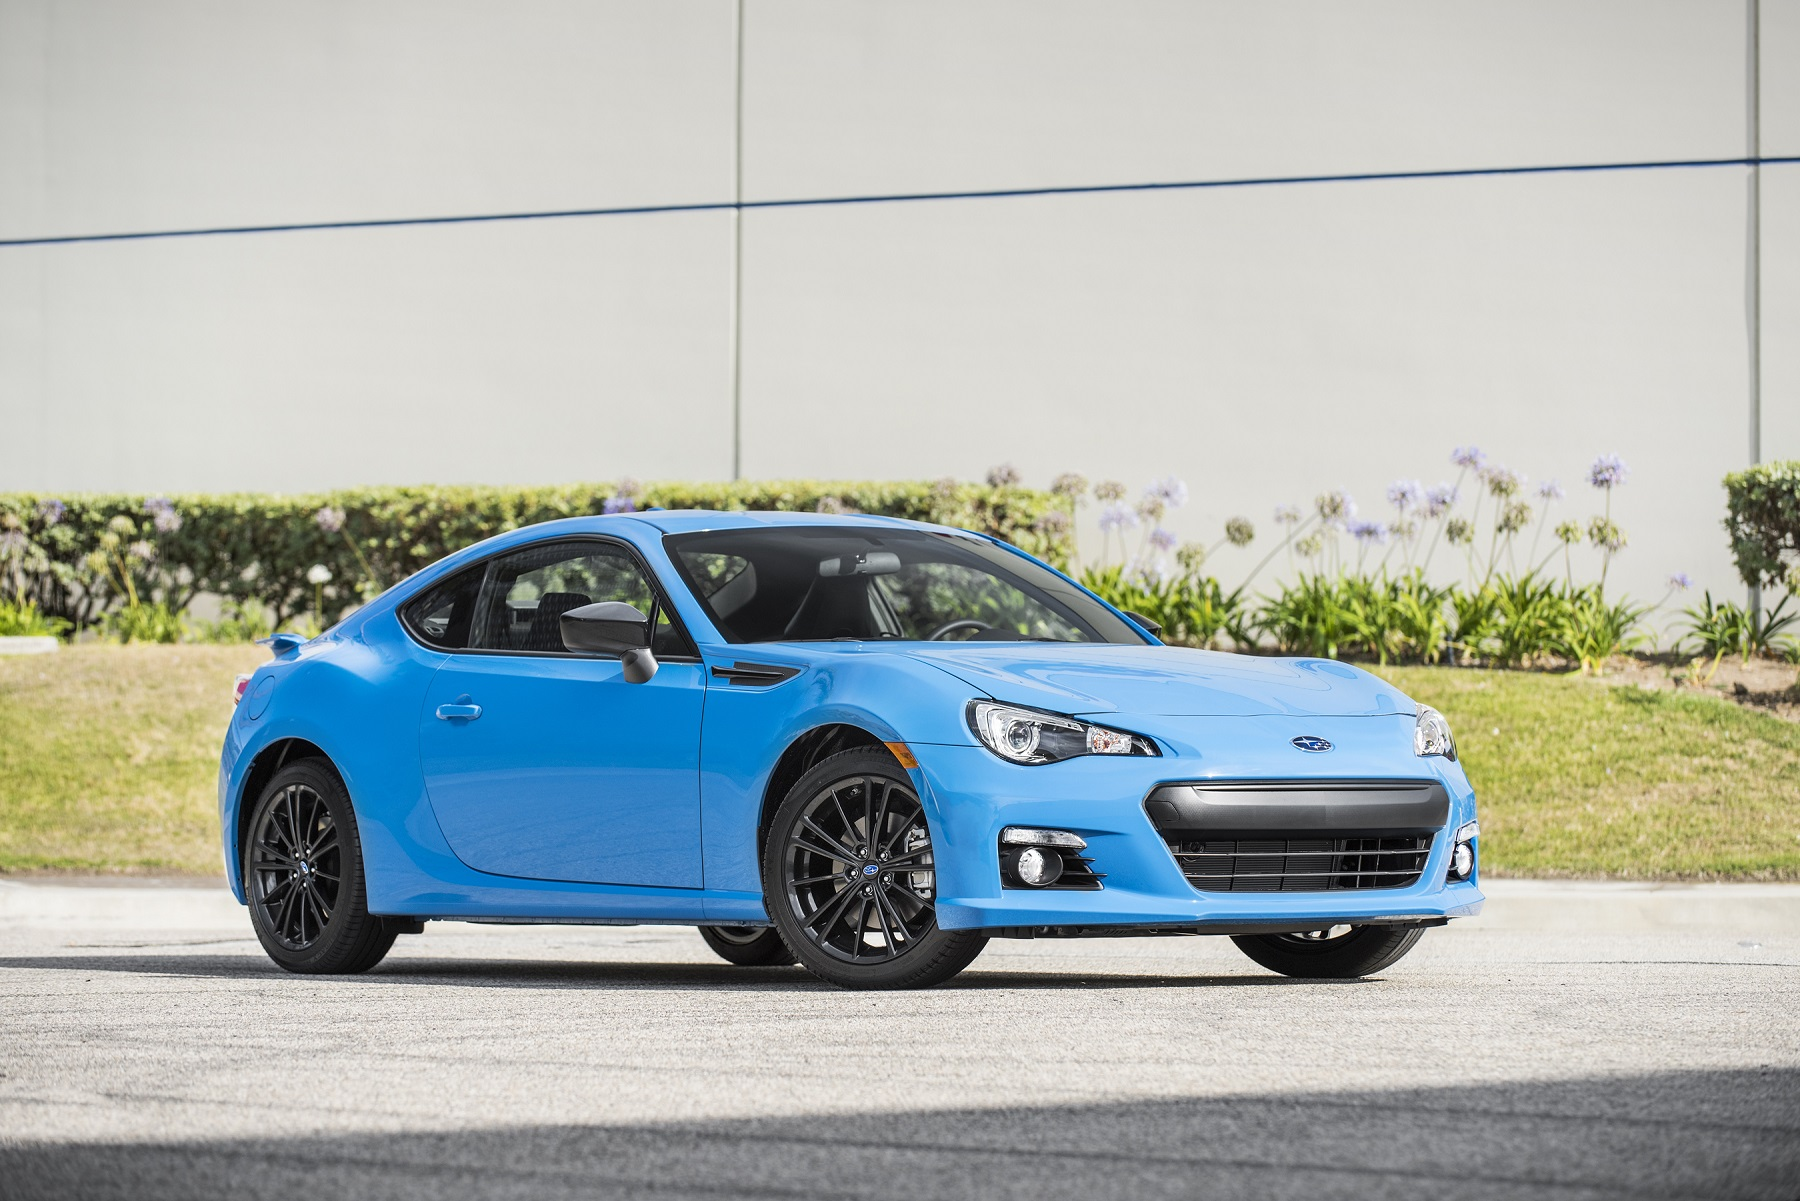 Manufacturer photo: Powered by Subaru's FA-Series naturally aspirated 2.0-liter, 200-horsepower BOXER engine, the BRZ is a sports car that does not sacrifice everyday comfort and practicality, including up to EPA-estimated 34-mpg highway fuel economy (with available 6-speed automatic transmission)